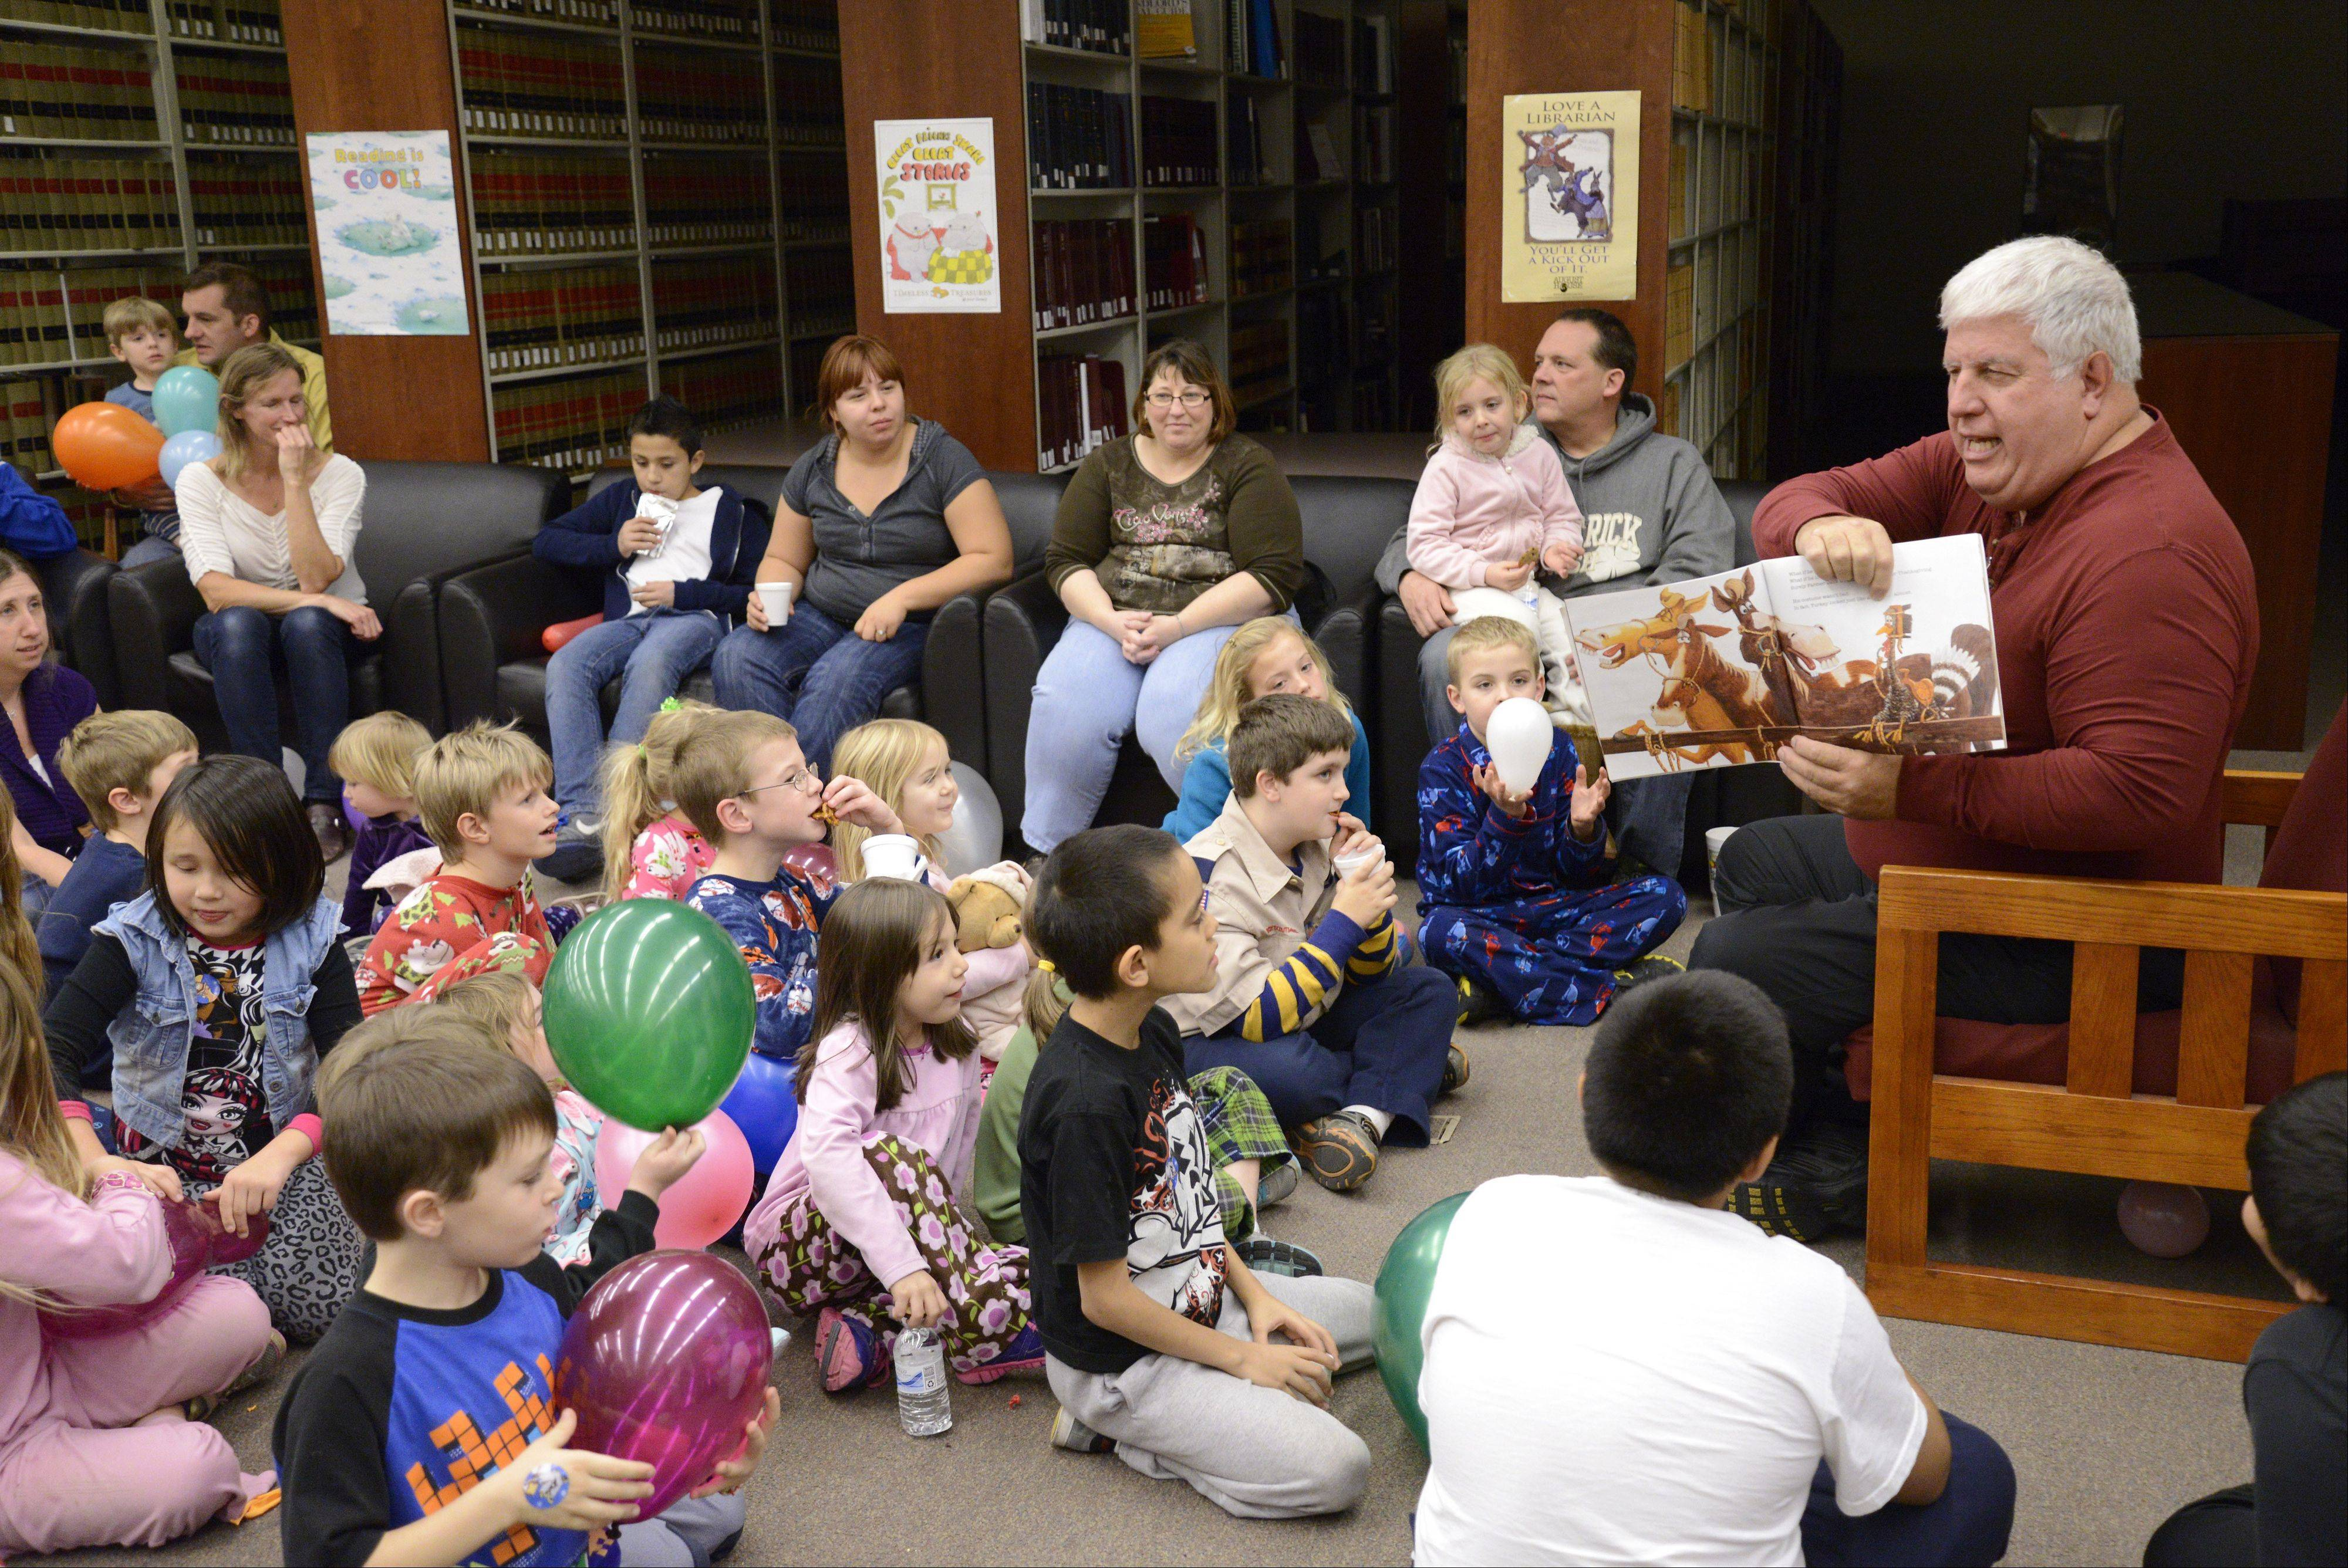 Kane County Judge David Akemann reads �Turkey Trouble� to a full house Wednesday during Family Reading Night at the Kane County Law Library in St. Charles. Judges Rene Cruz and John Dalton joined Akemann to read to more than 40 children and their parents at the 15th annual event.